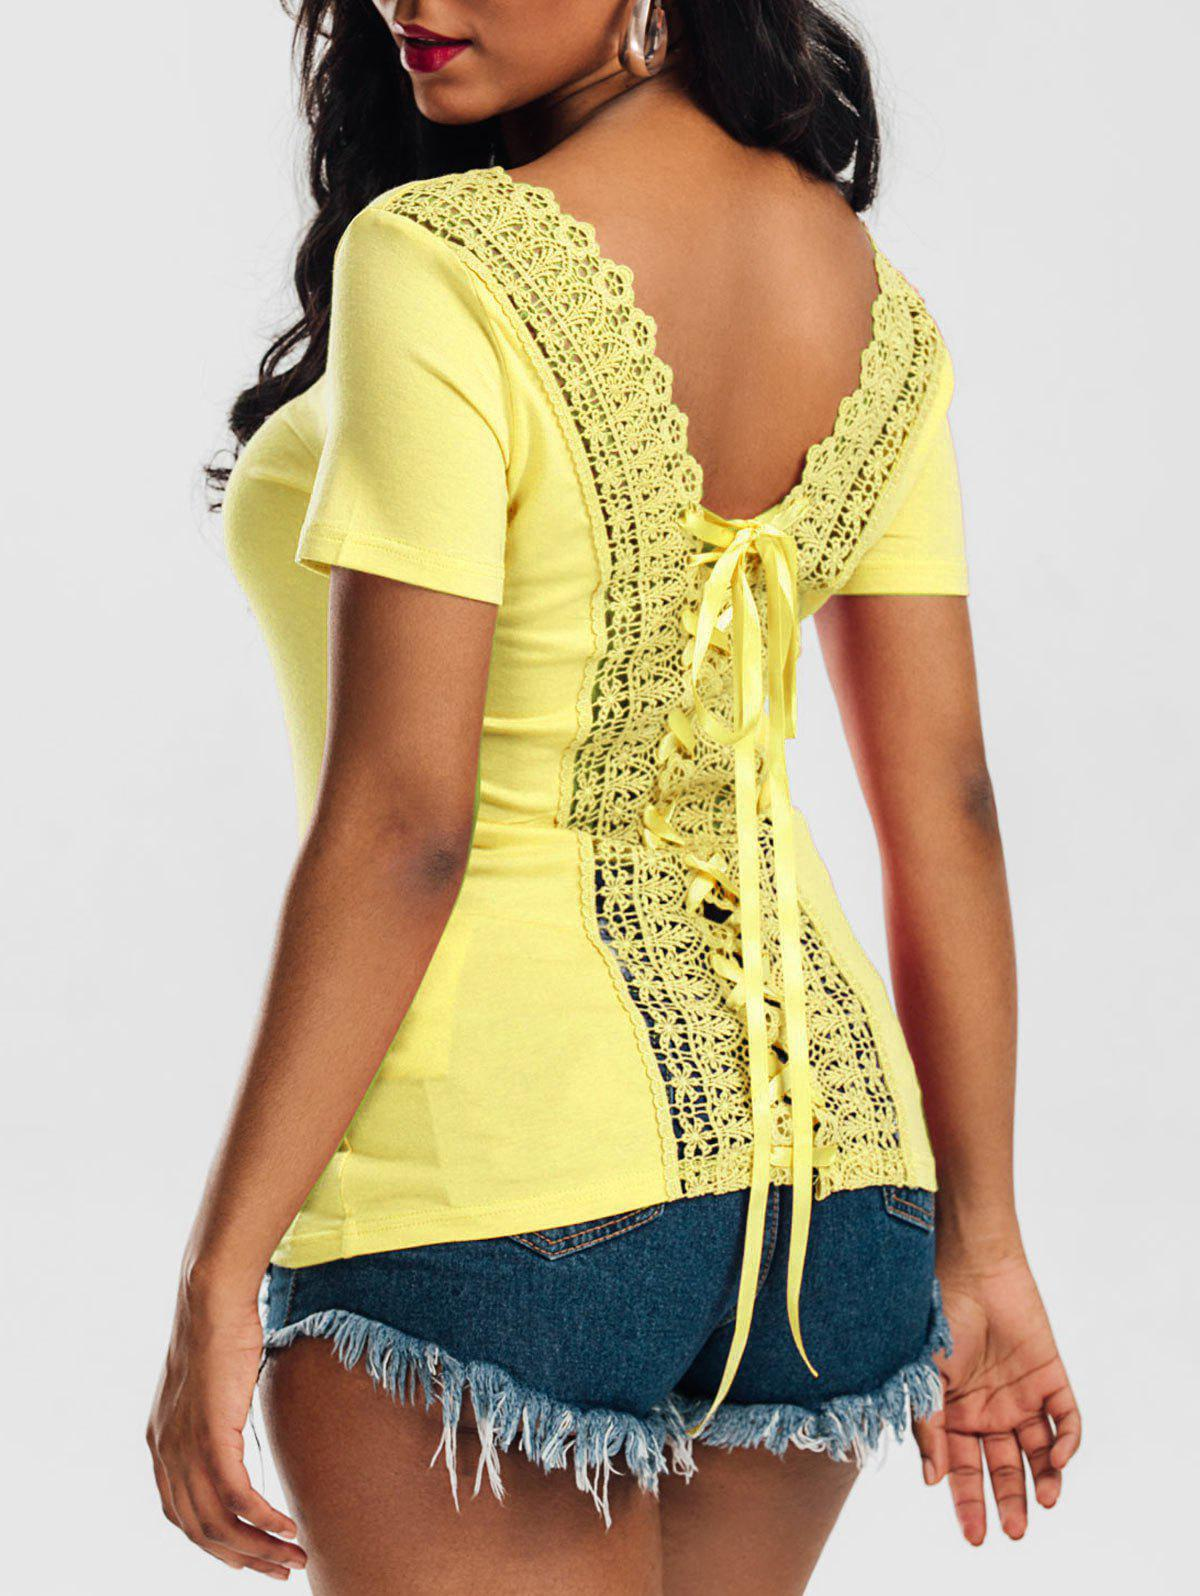 Scoop Neck Lace up Laced Top 213278710